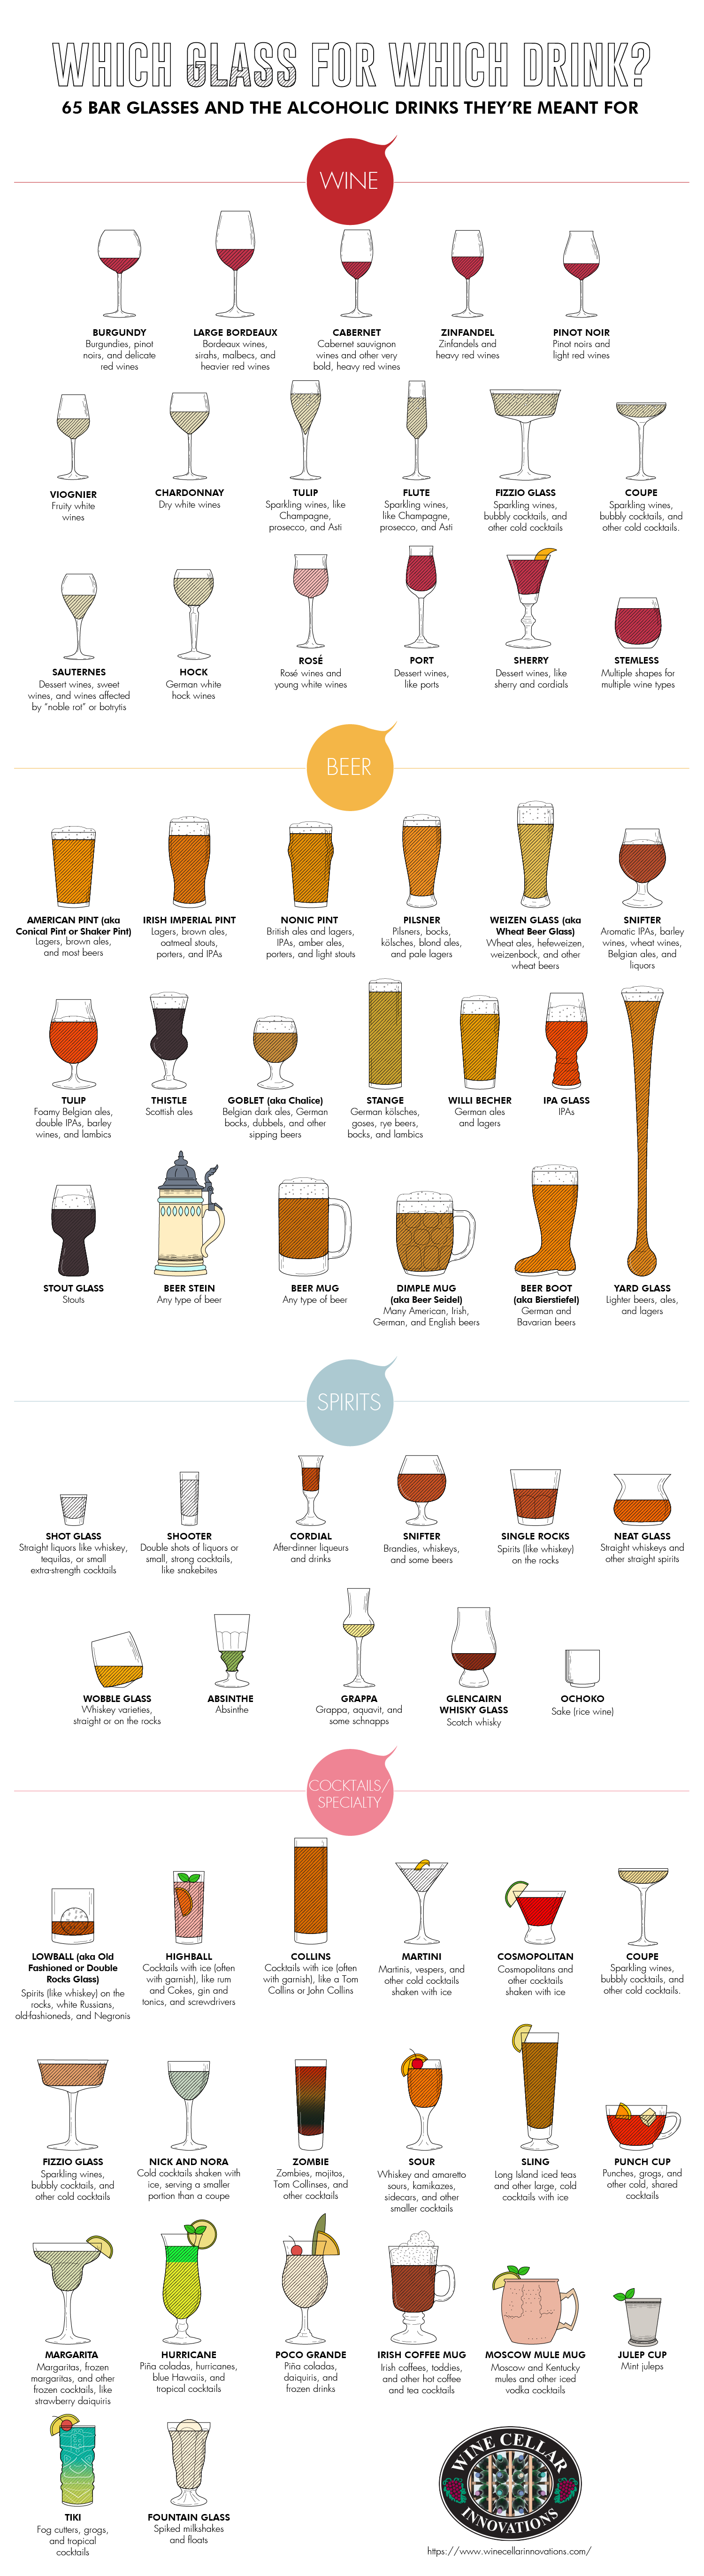 Raise Your Bar Knowledge: 65 Bar Glass Varieties and Their Specific Uses - Infographic